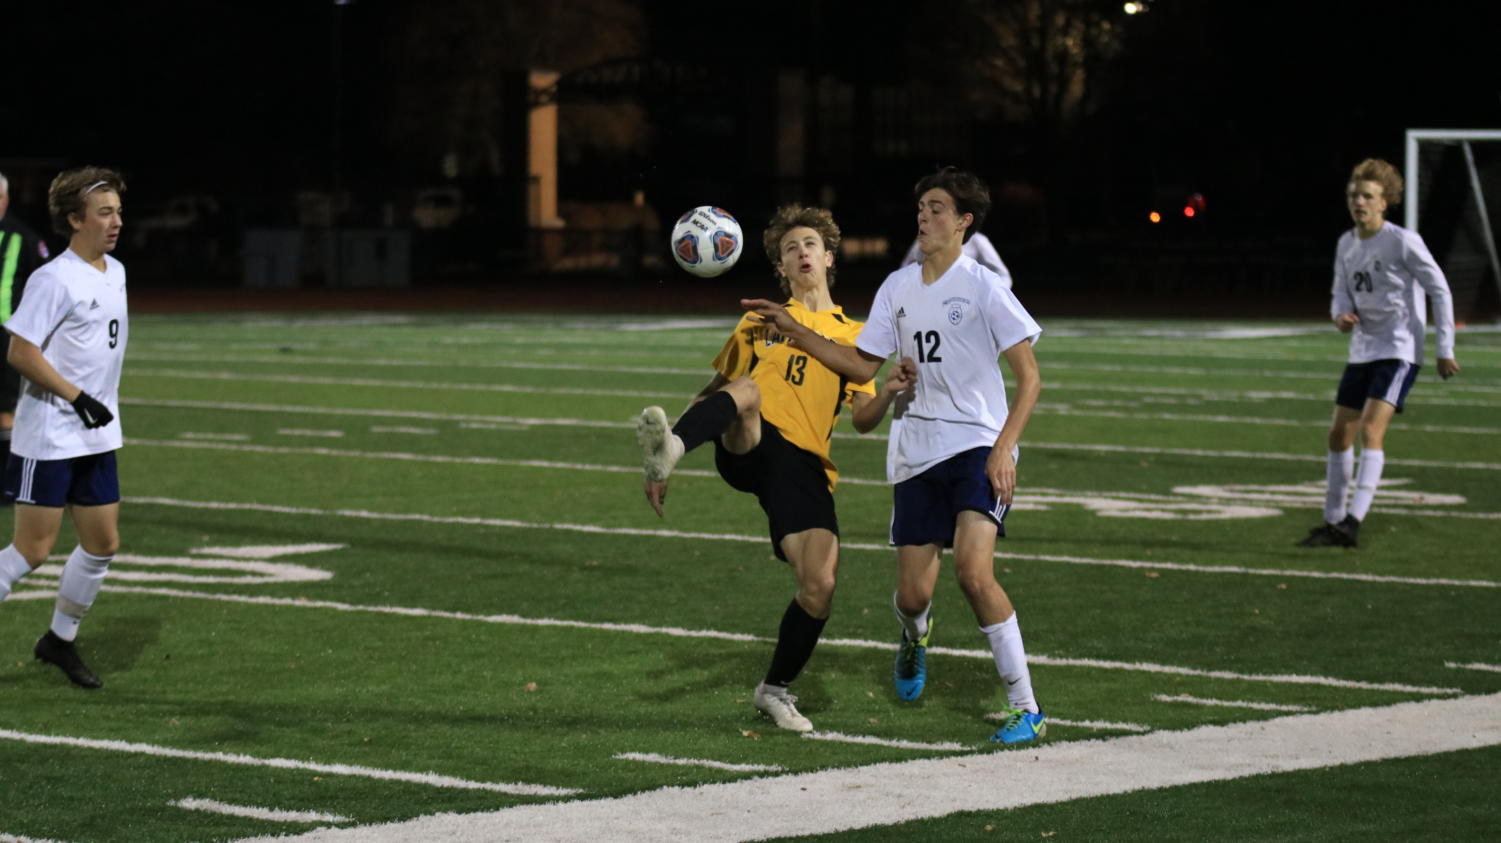 Varsity+soccer+travelled+to+face+rival+Lafayette+Nov.+4+for+the+semifinal+round+of+Districts.+While+the+Mustangs%E2%80%99+9-10-1+season+record+paled+in+comparison+against+the+Lancers%E2%80%99+17-6%2C+MHS+had+won+five+of+their+last+seven+games+coming+into+the+match.%0A